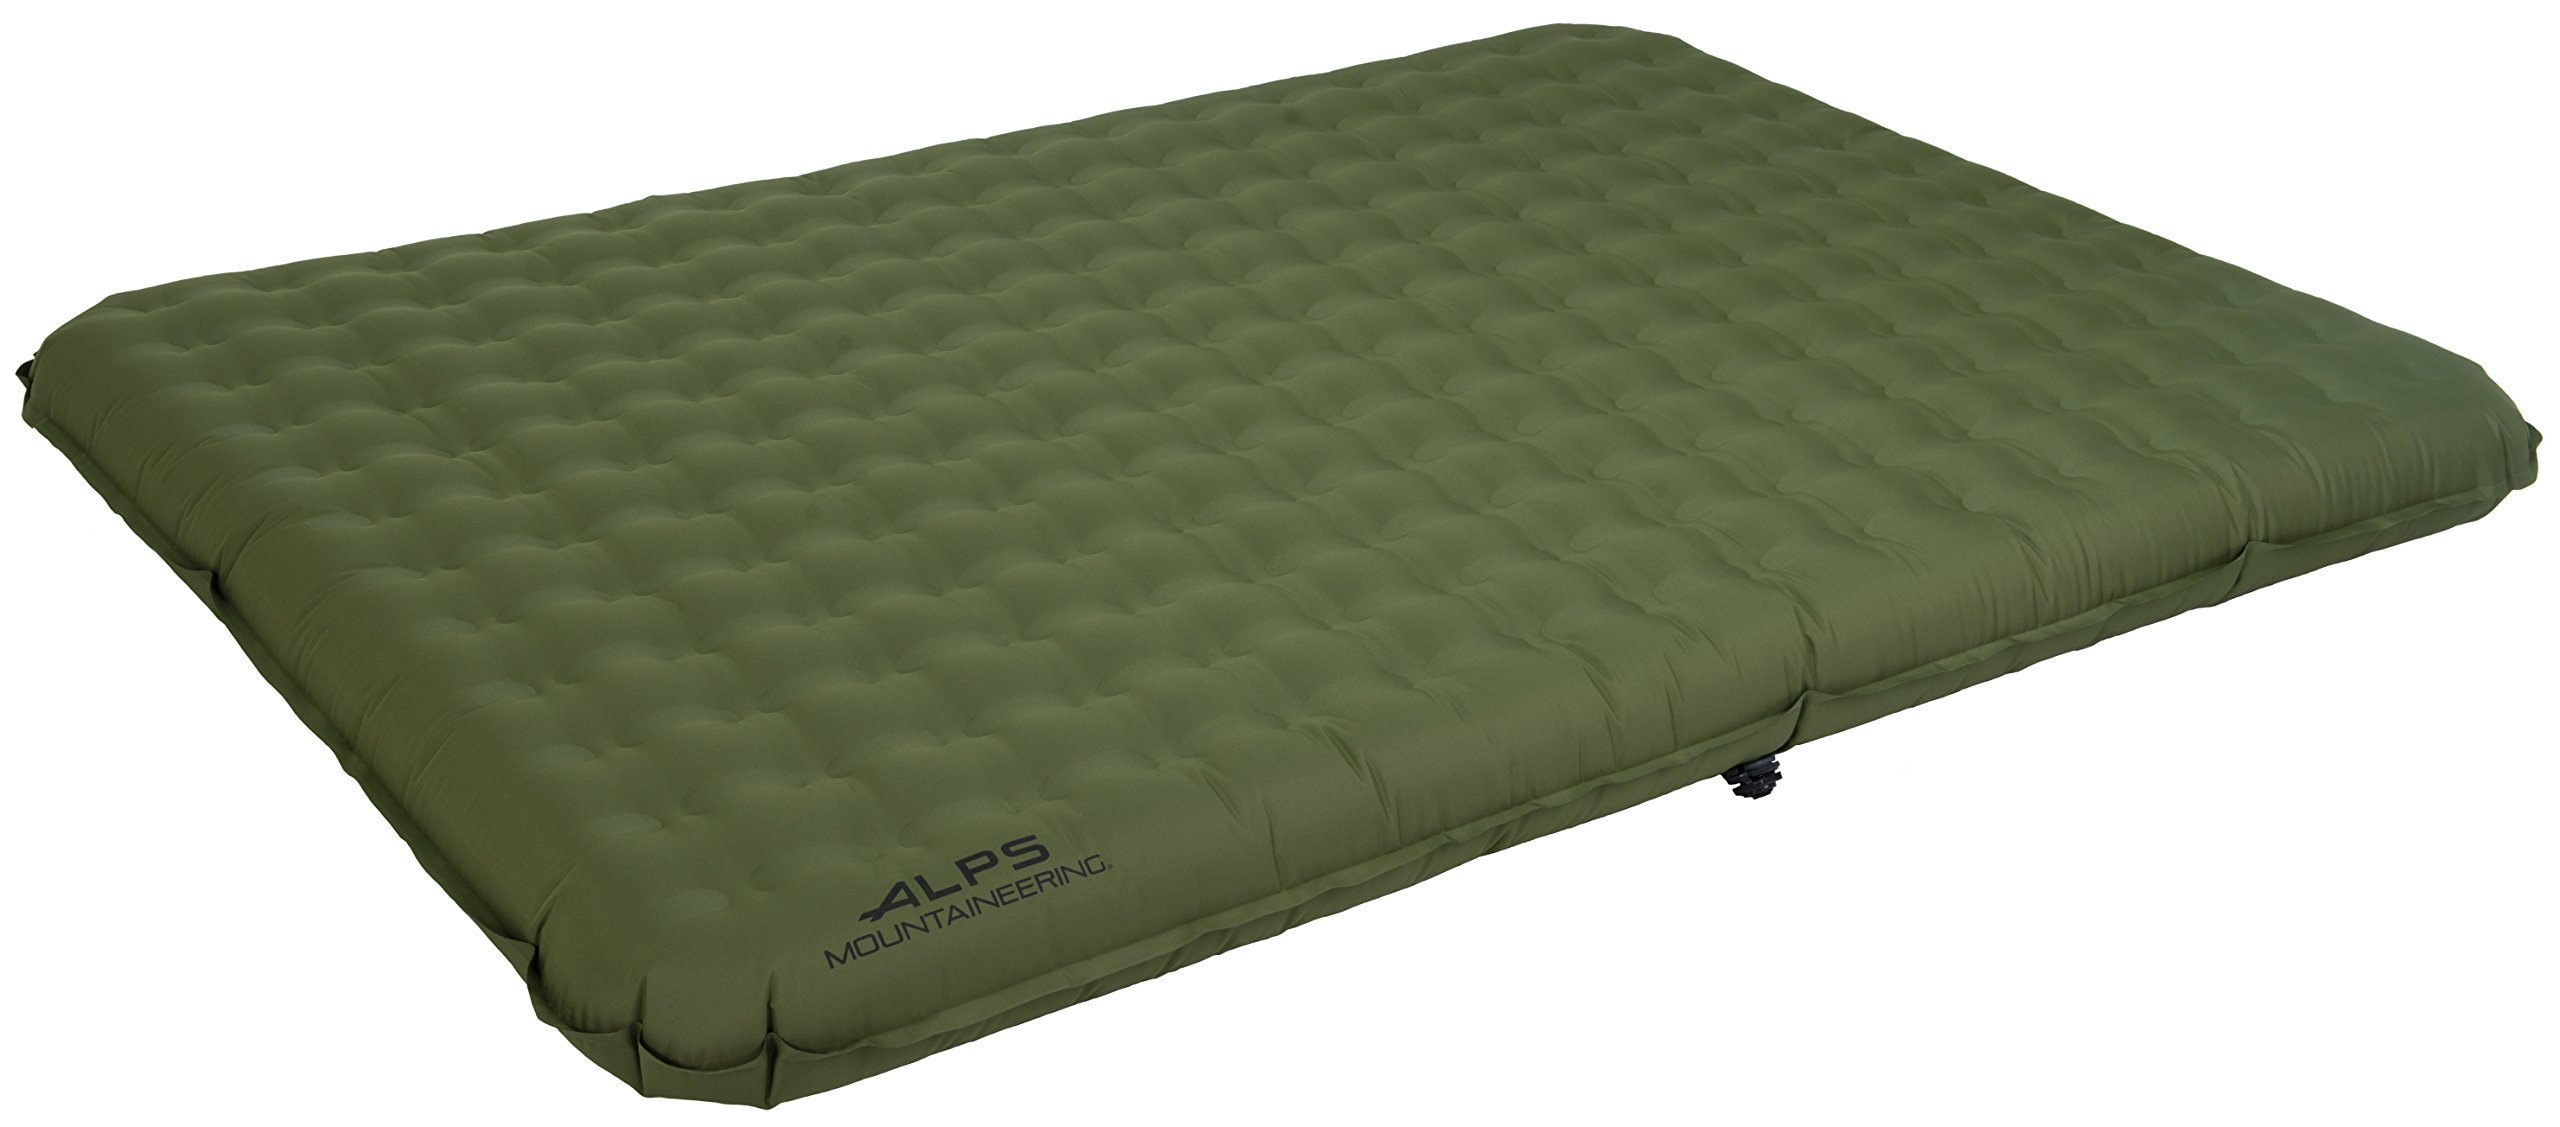 How To Choose The Best Air Mattress For Camping 8